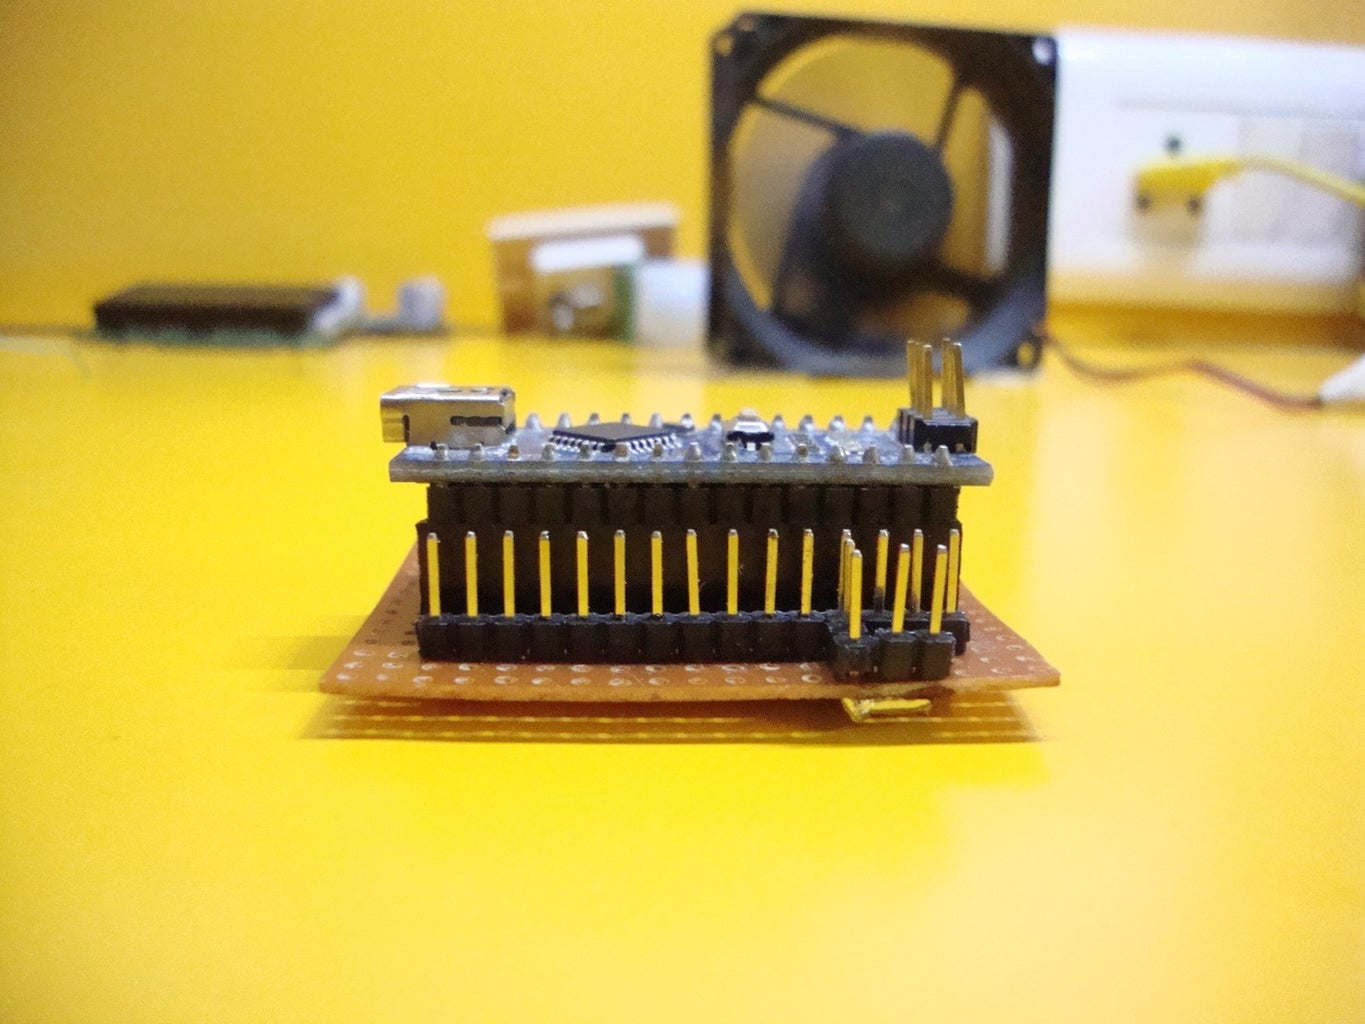 Making the Transmitter: Make a Shield for Arduino